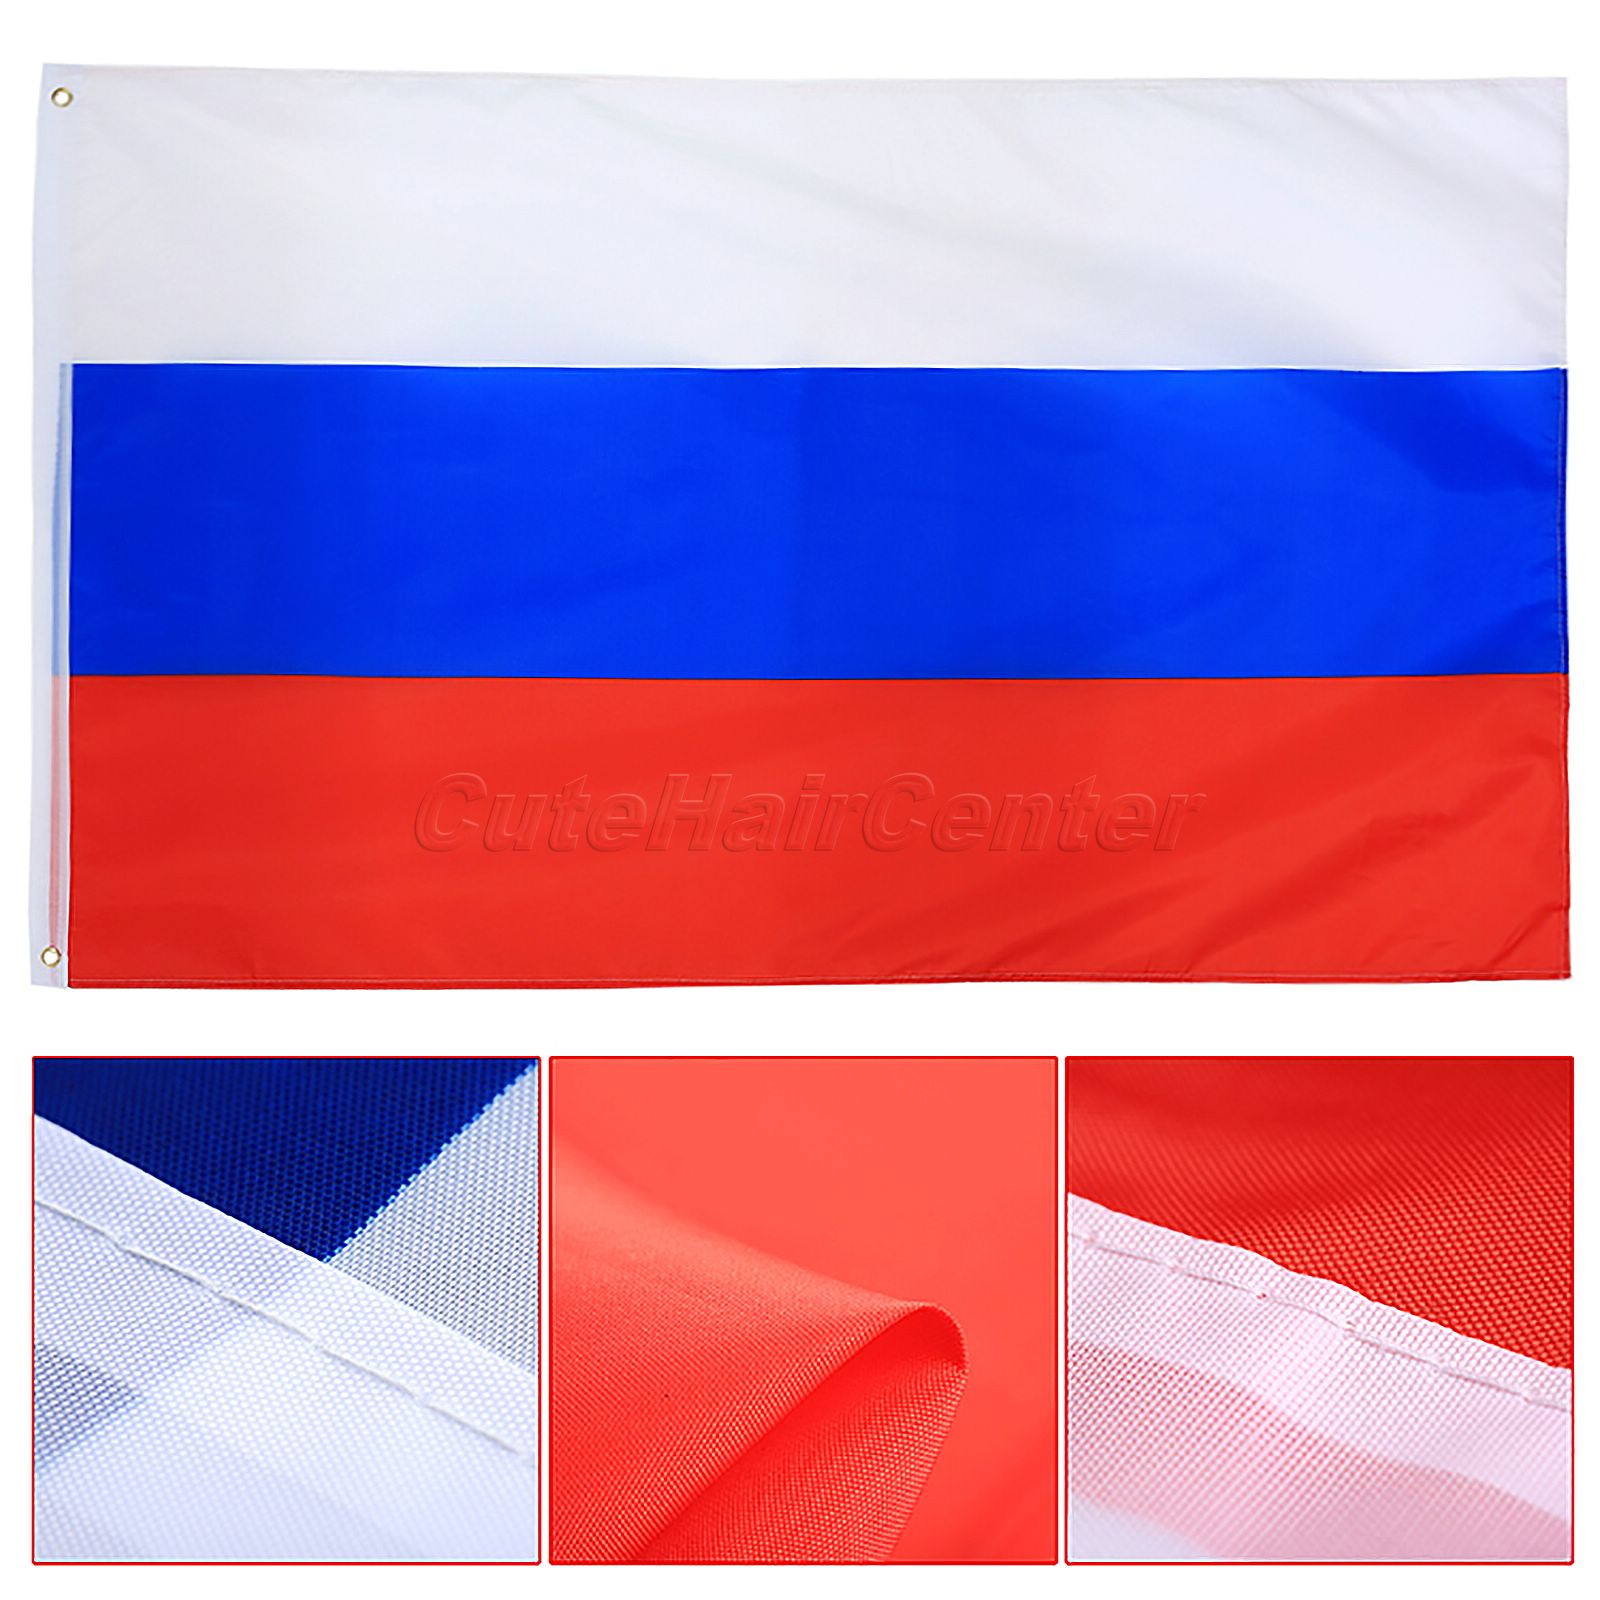 History, Images and Meaning of Russian and USSR Flags |Russian National Flag